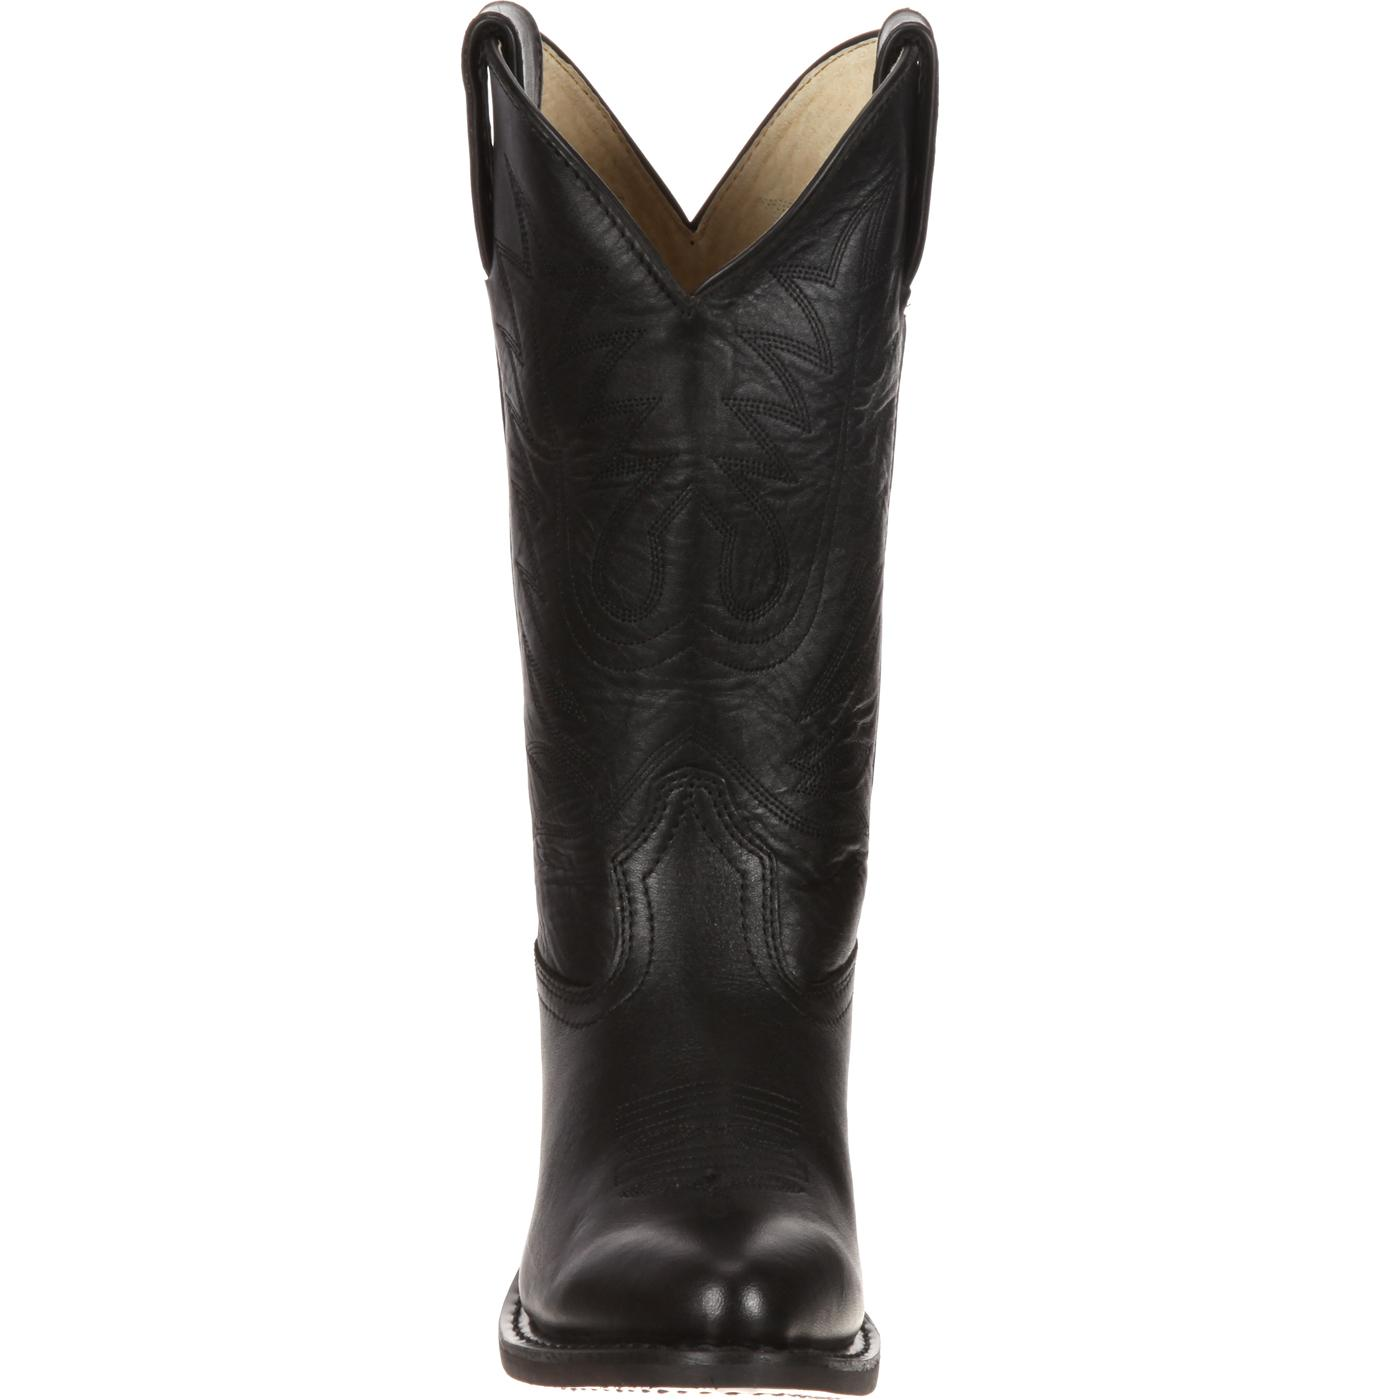 Durango: Women&39s Black Leather Western Boots style RD4100